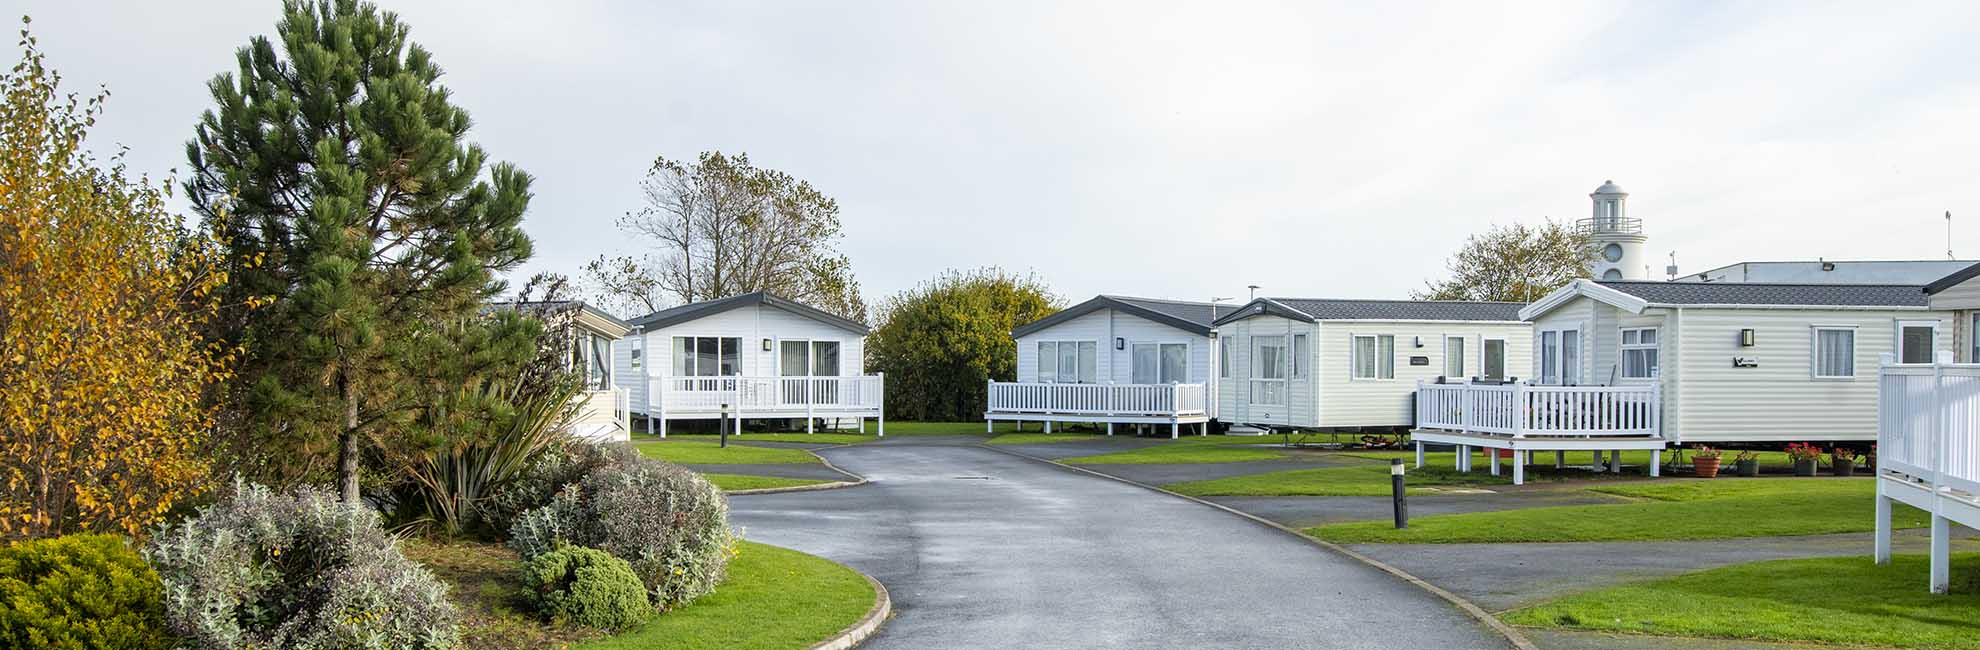 Park setting at Whitley Bay Holiday Park